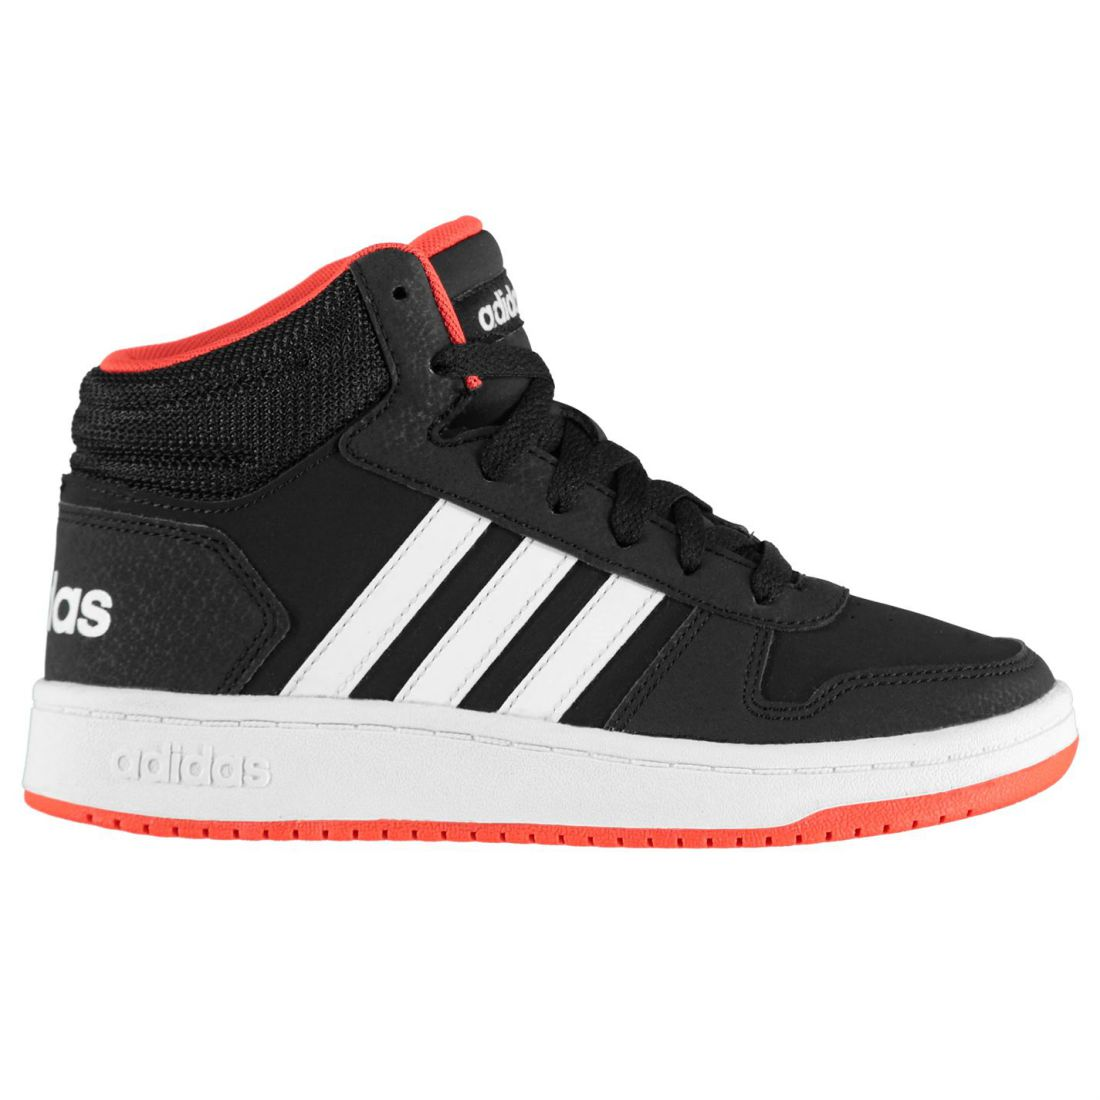 1fe060385b3 adidas Hoops Mid 2.0 High Top Sneakers Youngster Boys Laces Fastened ...